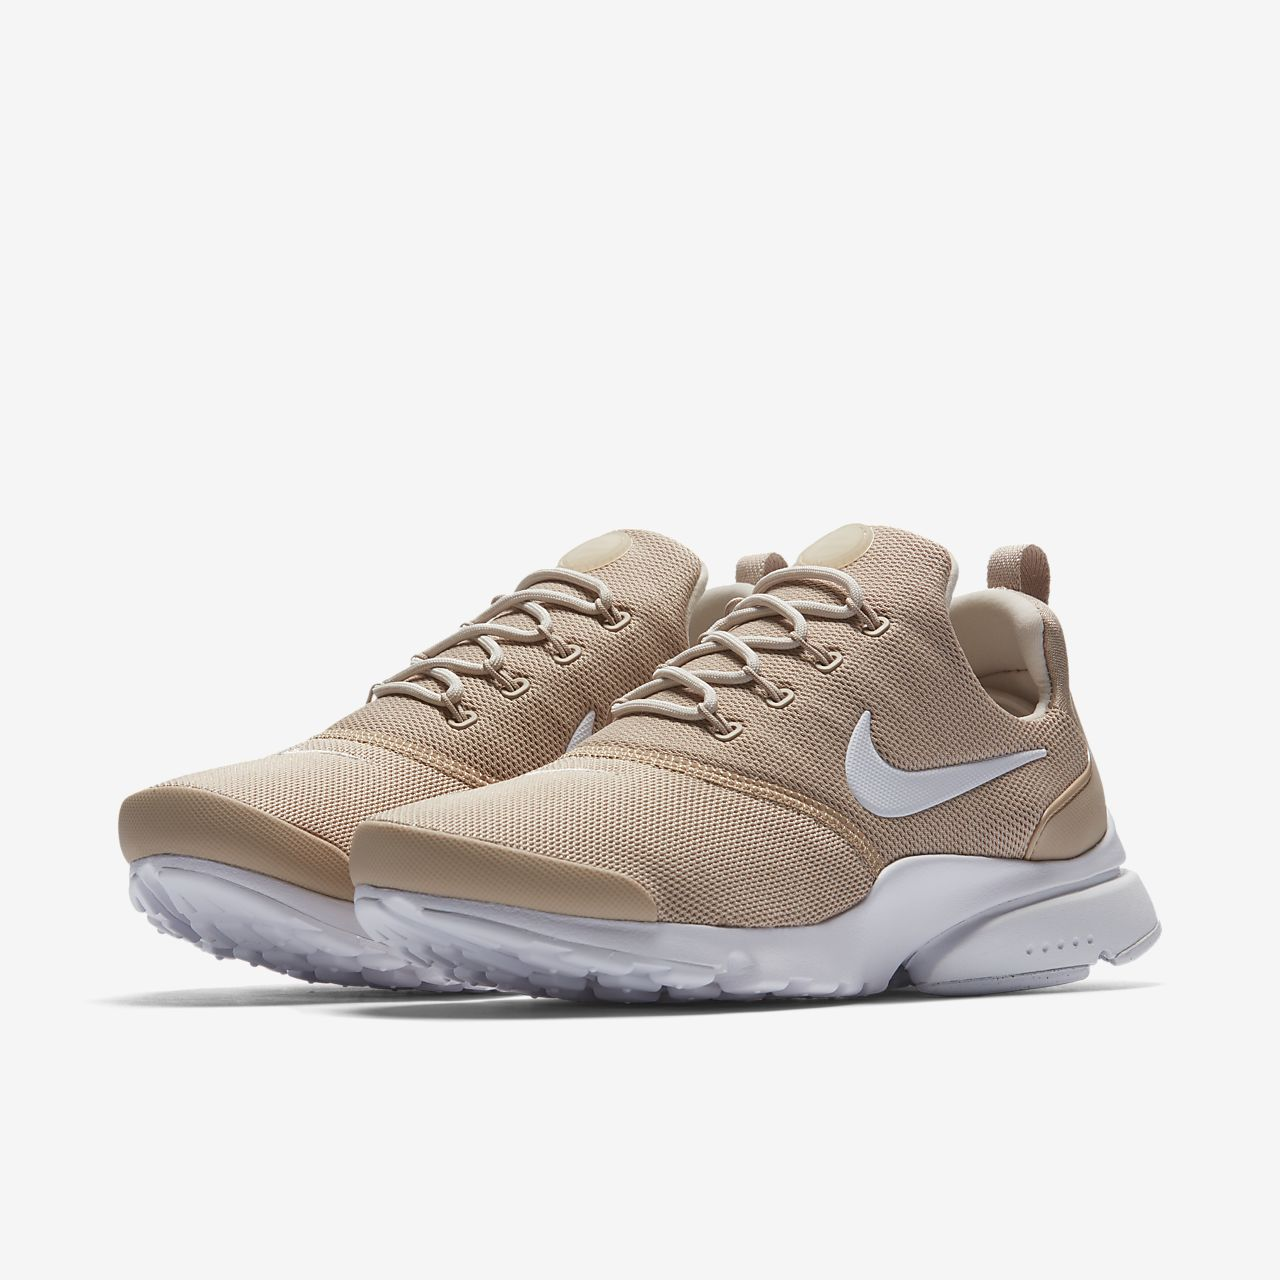 new style 828d3 324bc nike presto fly